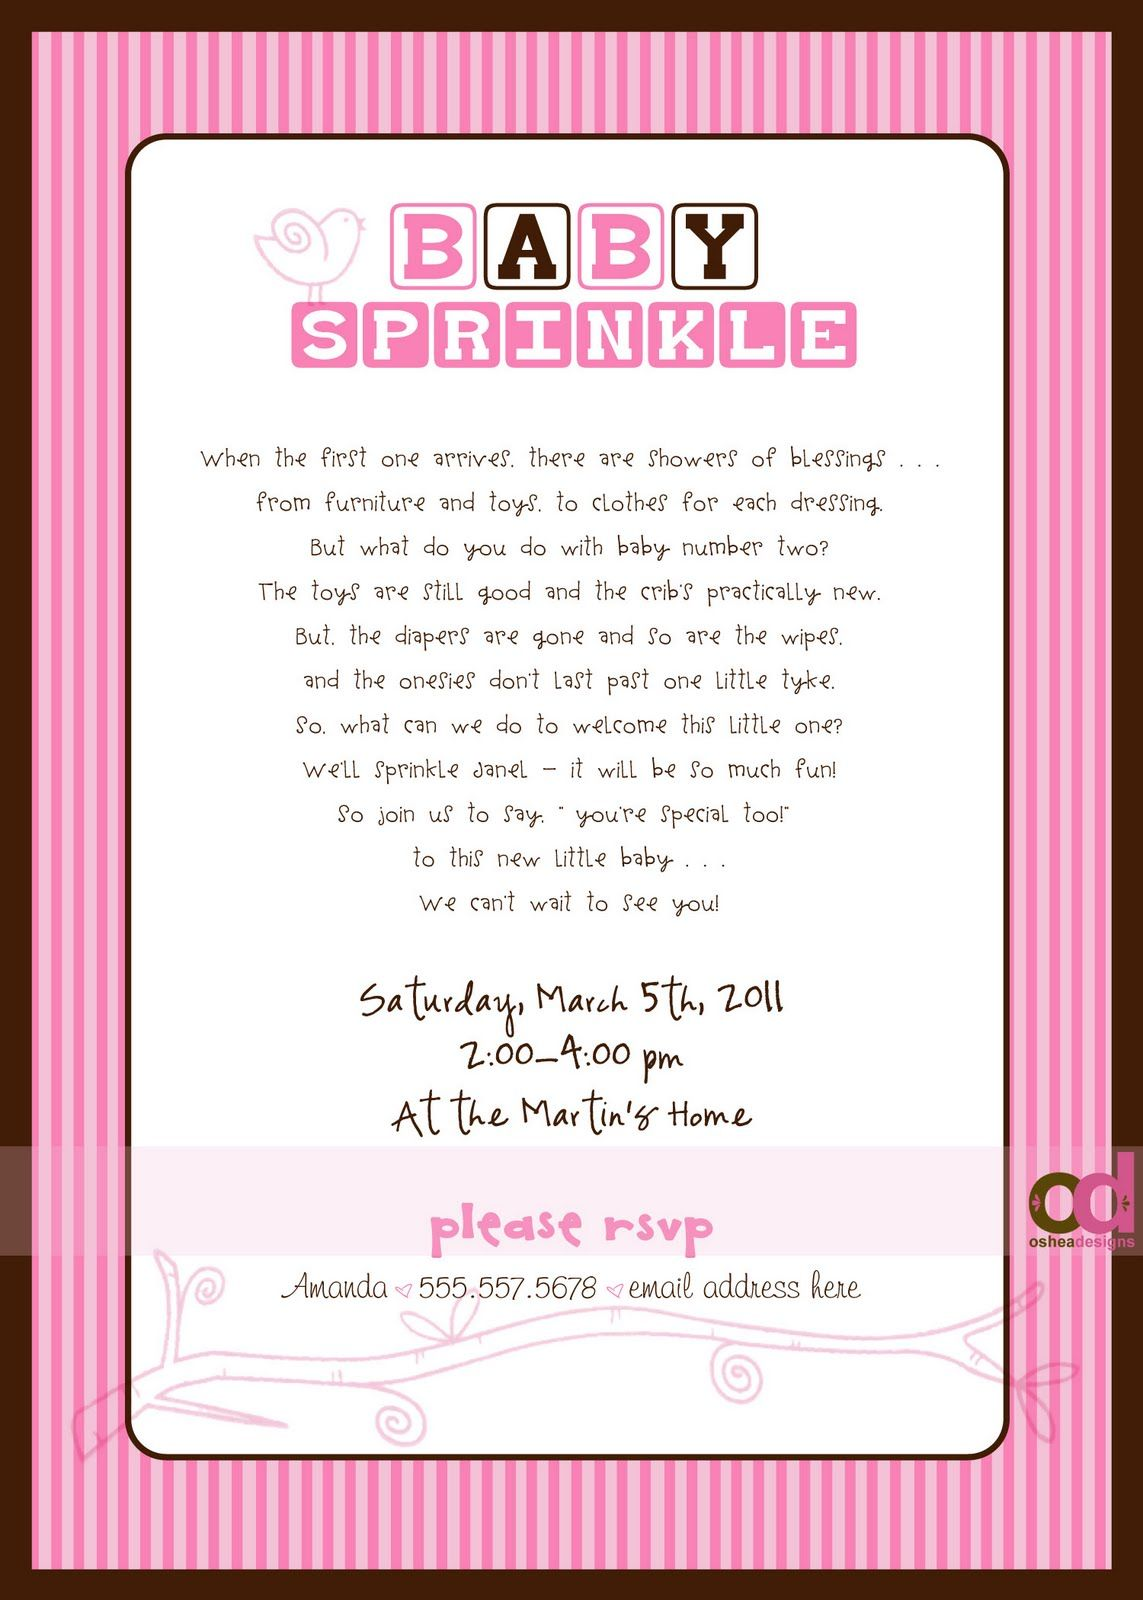 Baby Shower Invitation Wording Is Easy To Find Pinterest